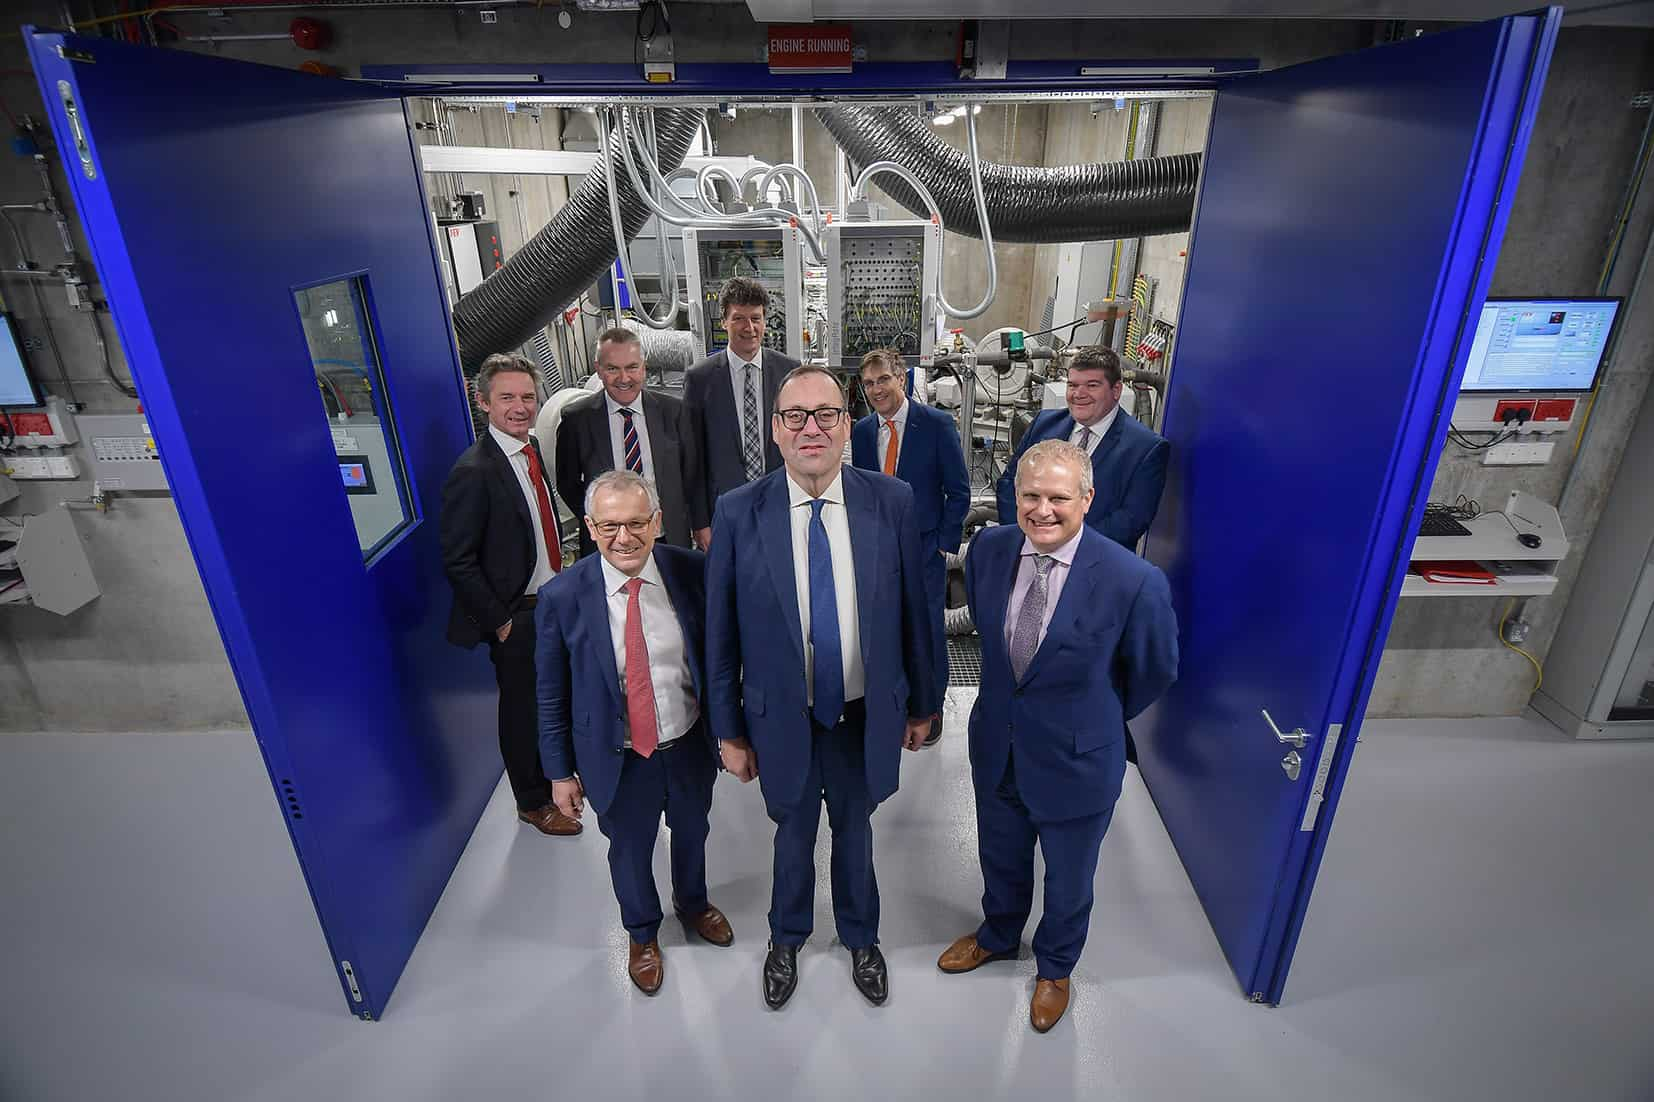 £50m clean mobility centre launched in Coventry